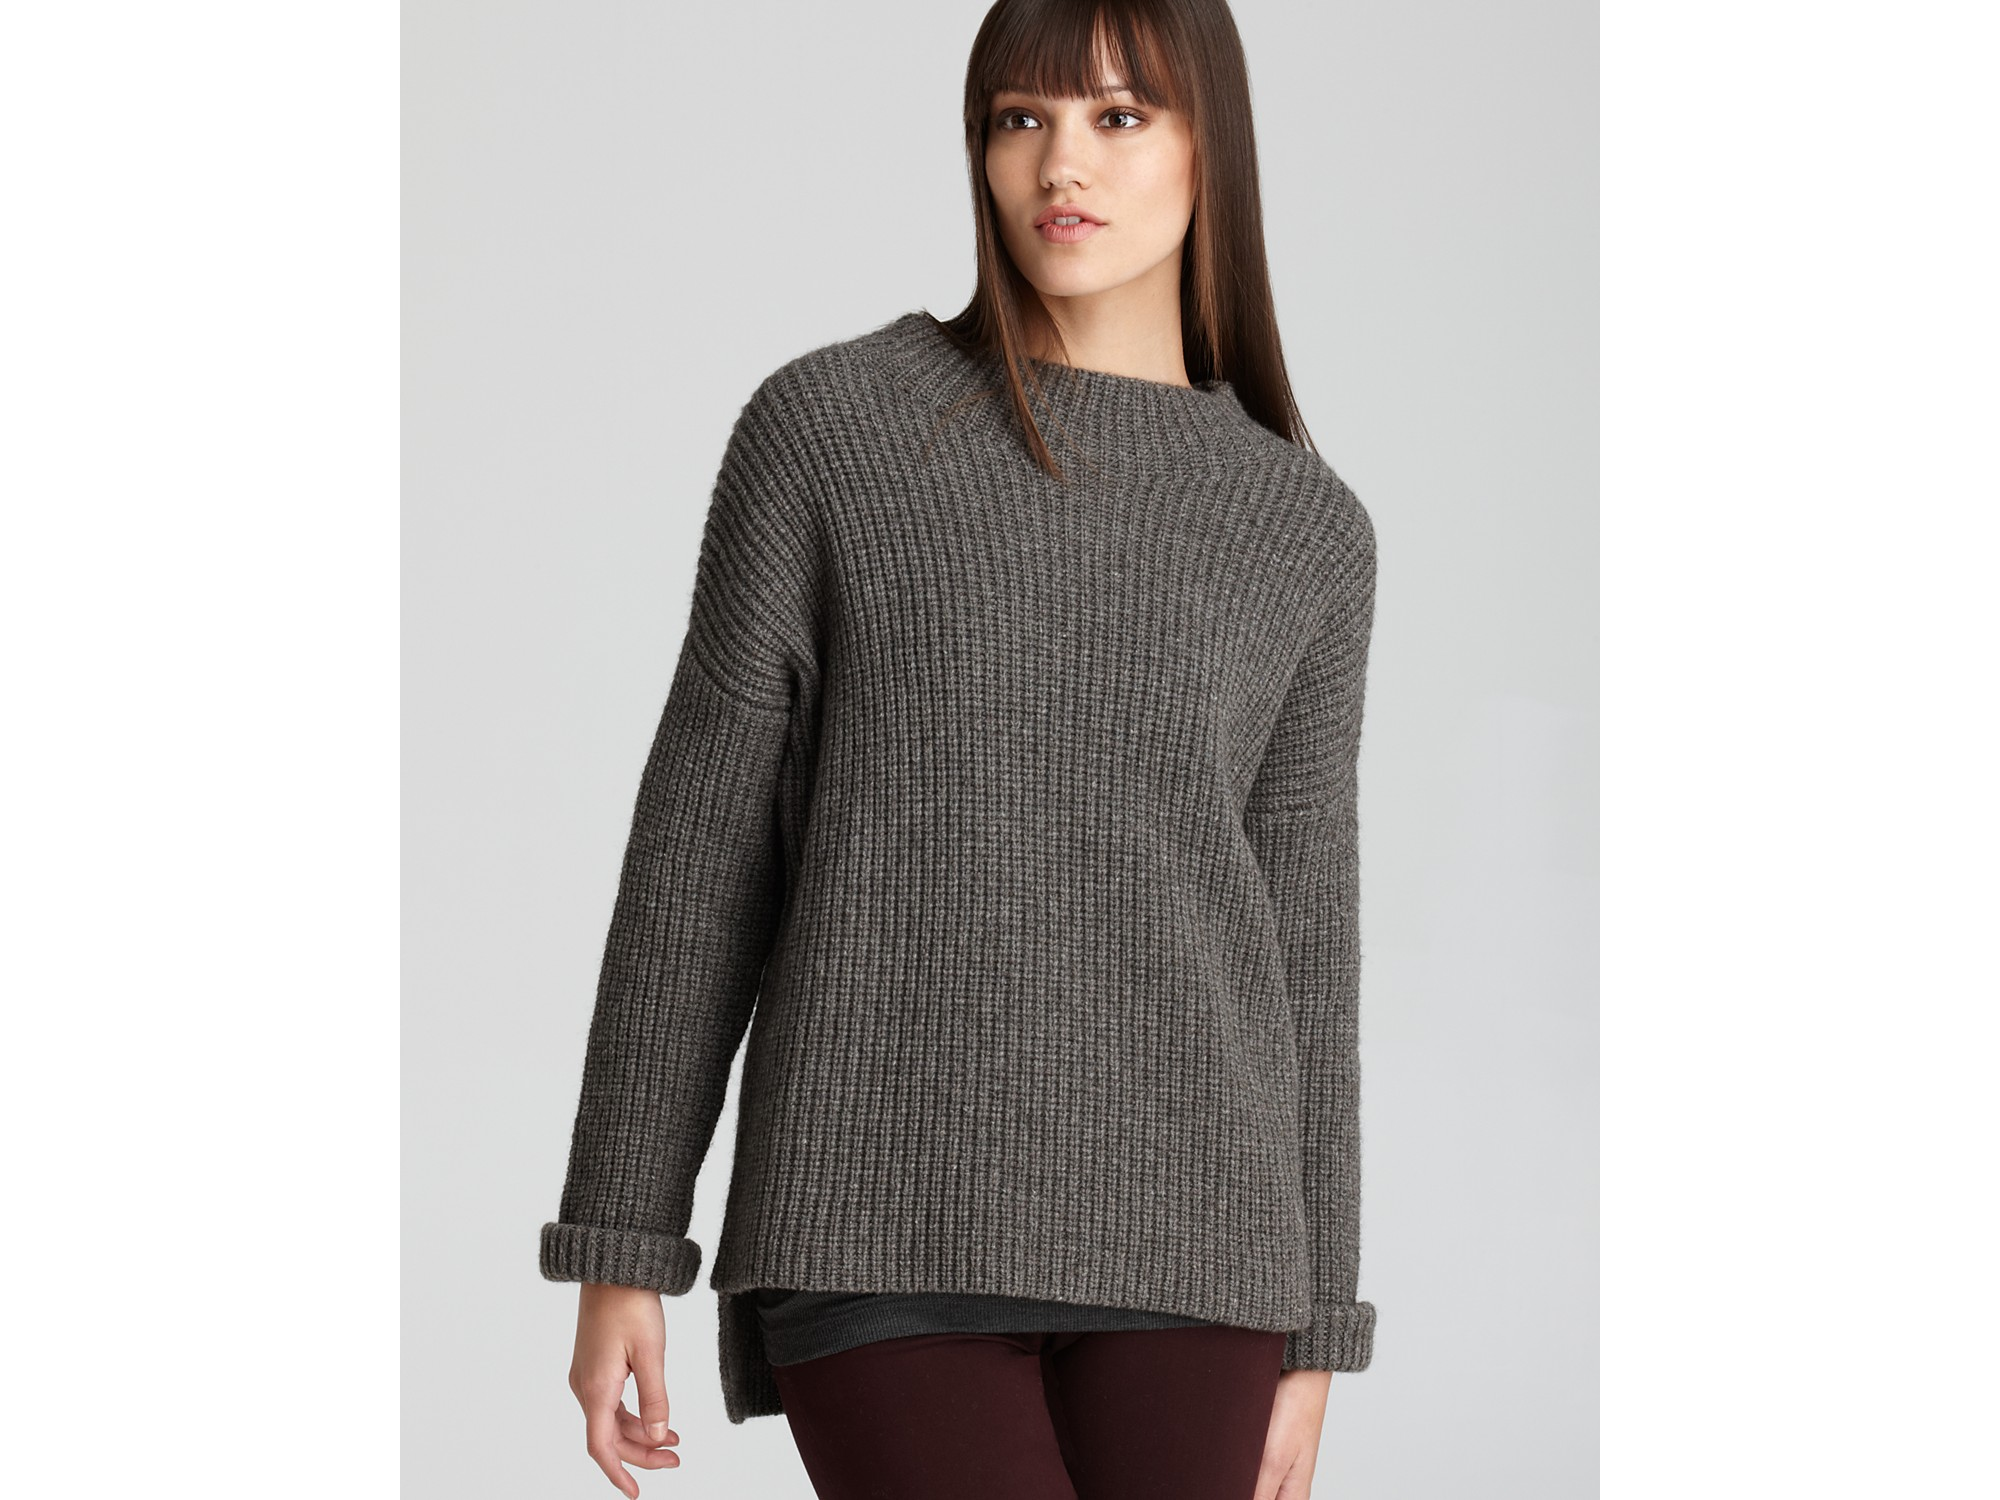 Stitch Knitted Sweater Together : Vince Sweater Rib Stitch Shaker Knit Crew in Gray Lyst